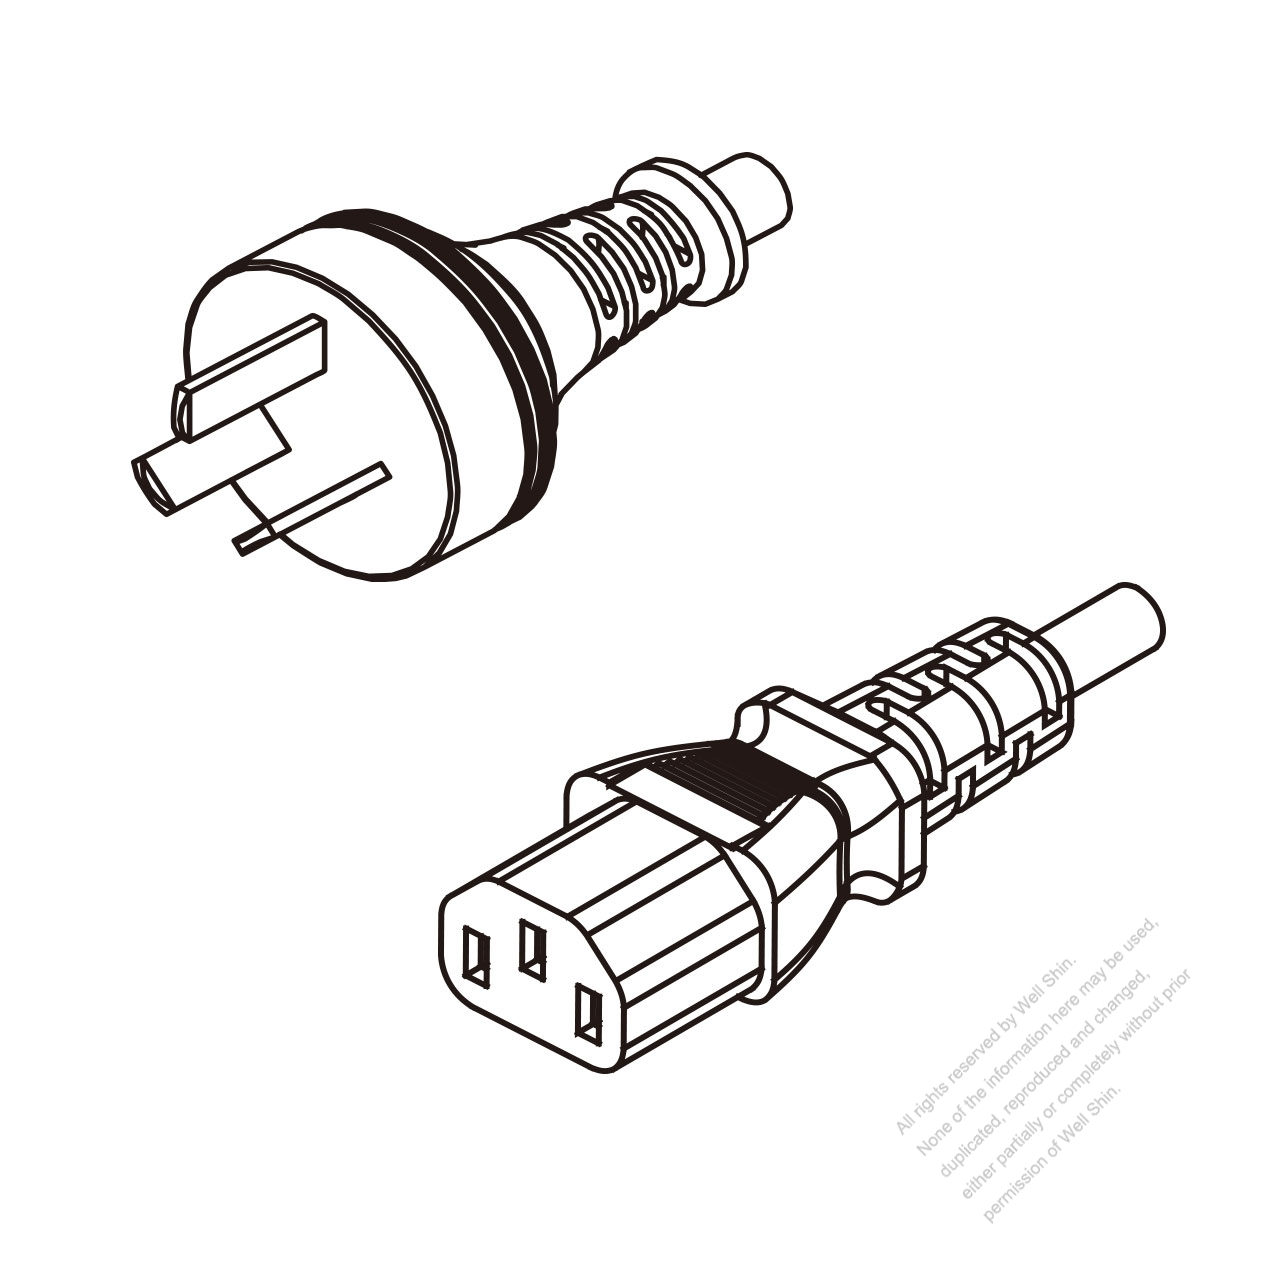 Listado productos additionally Dc Line Cord moreover Standard Power Cord further C13 Fuel System in addition APC Cables C14 To C13 10A250V183. on iec 320 c13